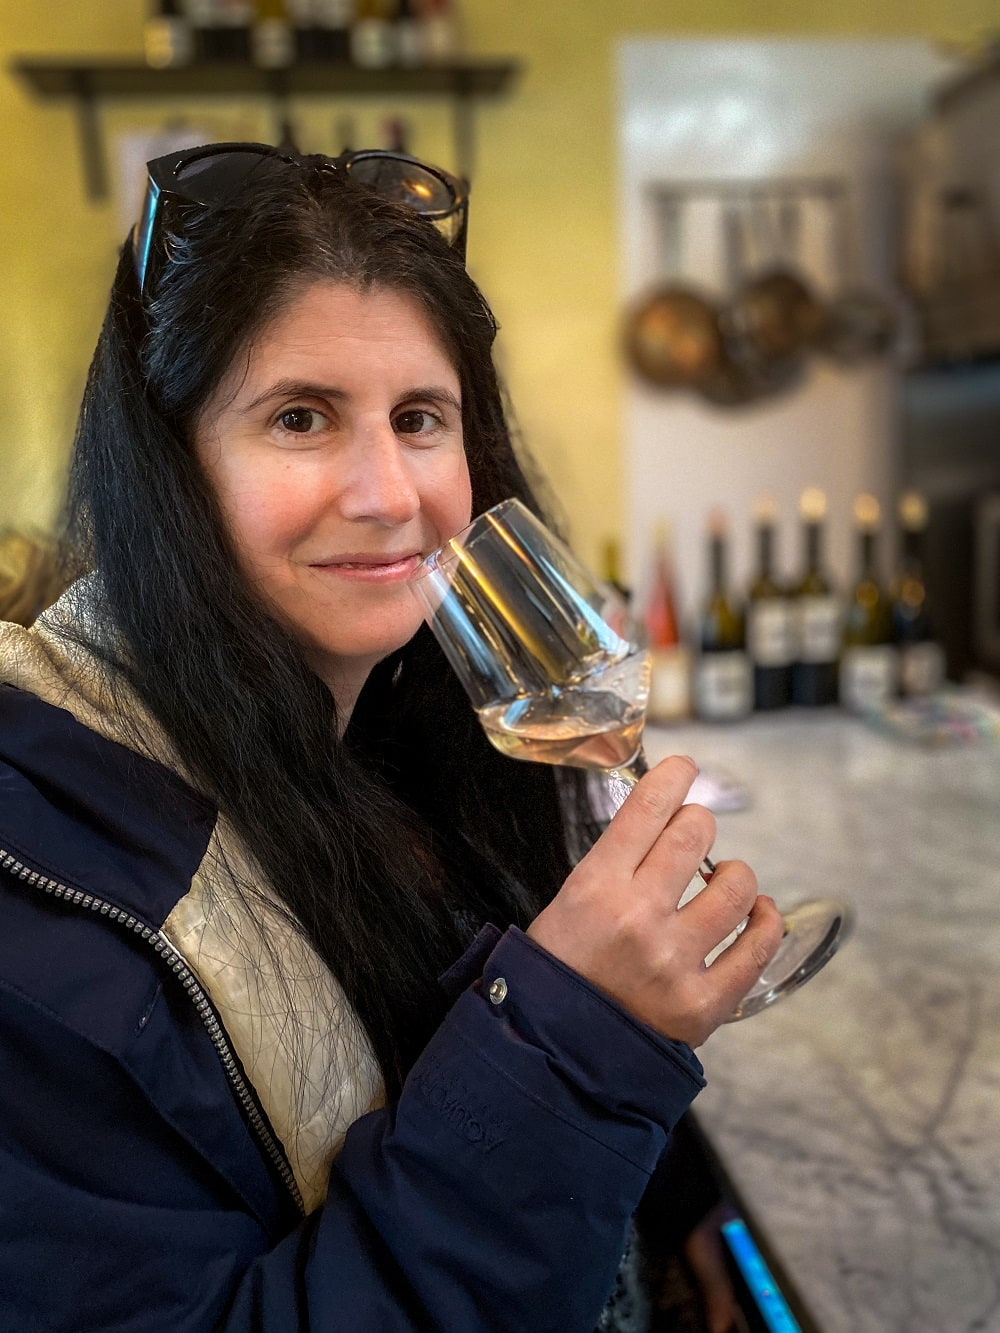 Anisa wine-tasting at Prima Materia